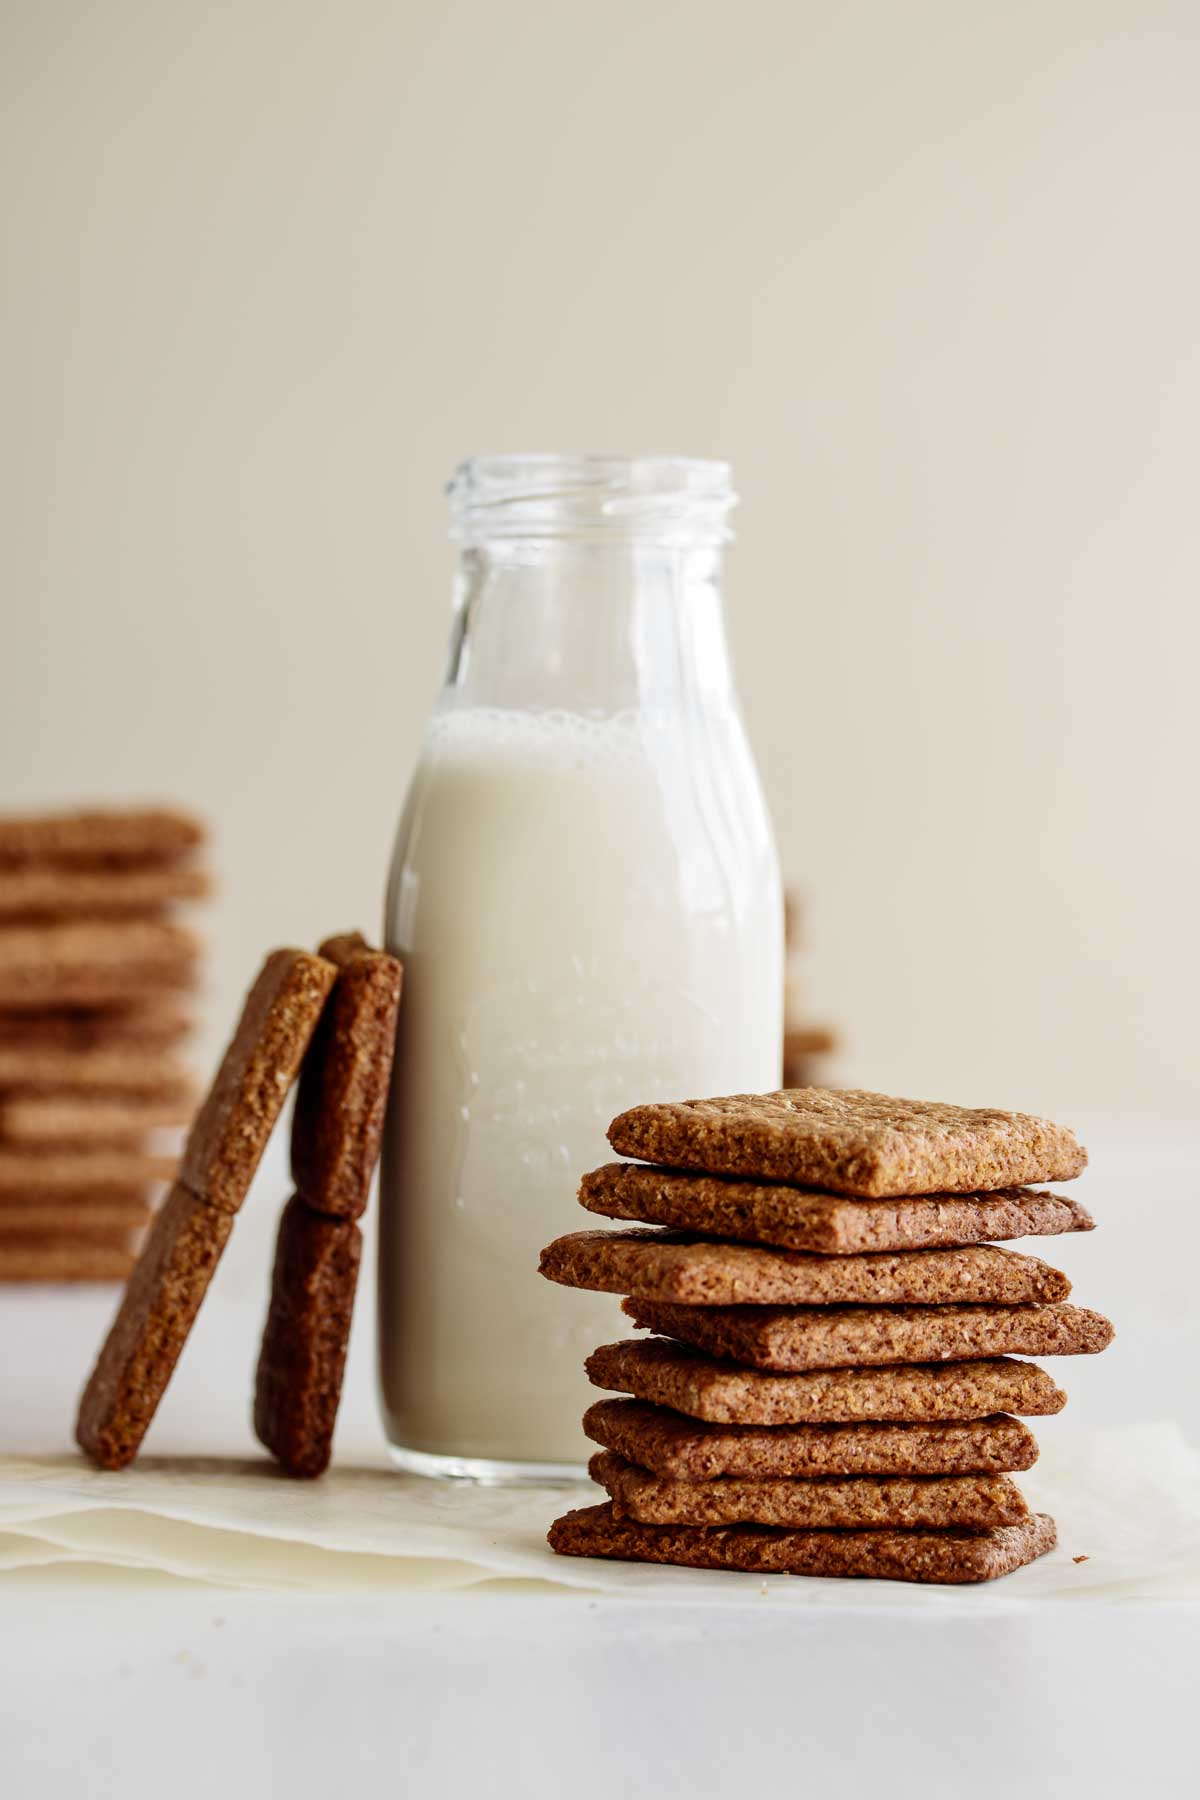 A stack of vegan graham crackers in front of a bottle of oat milk.